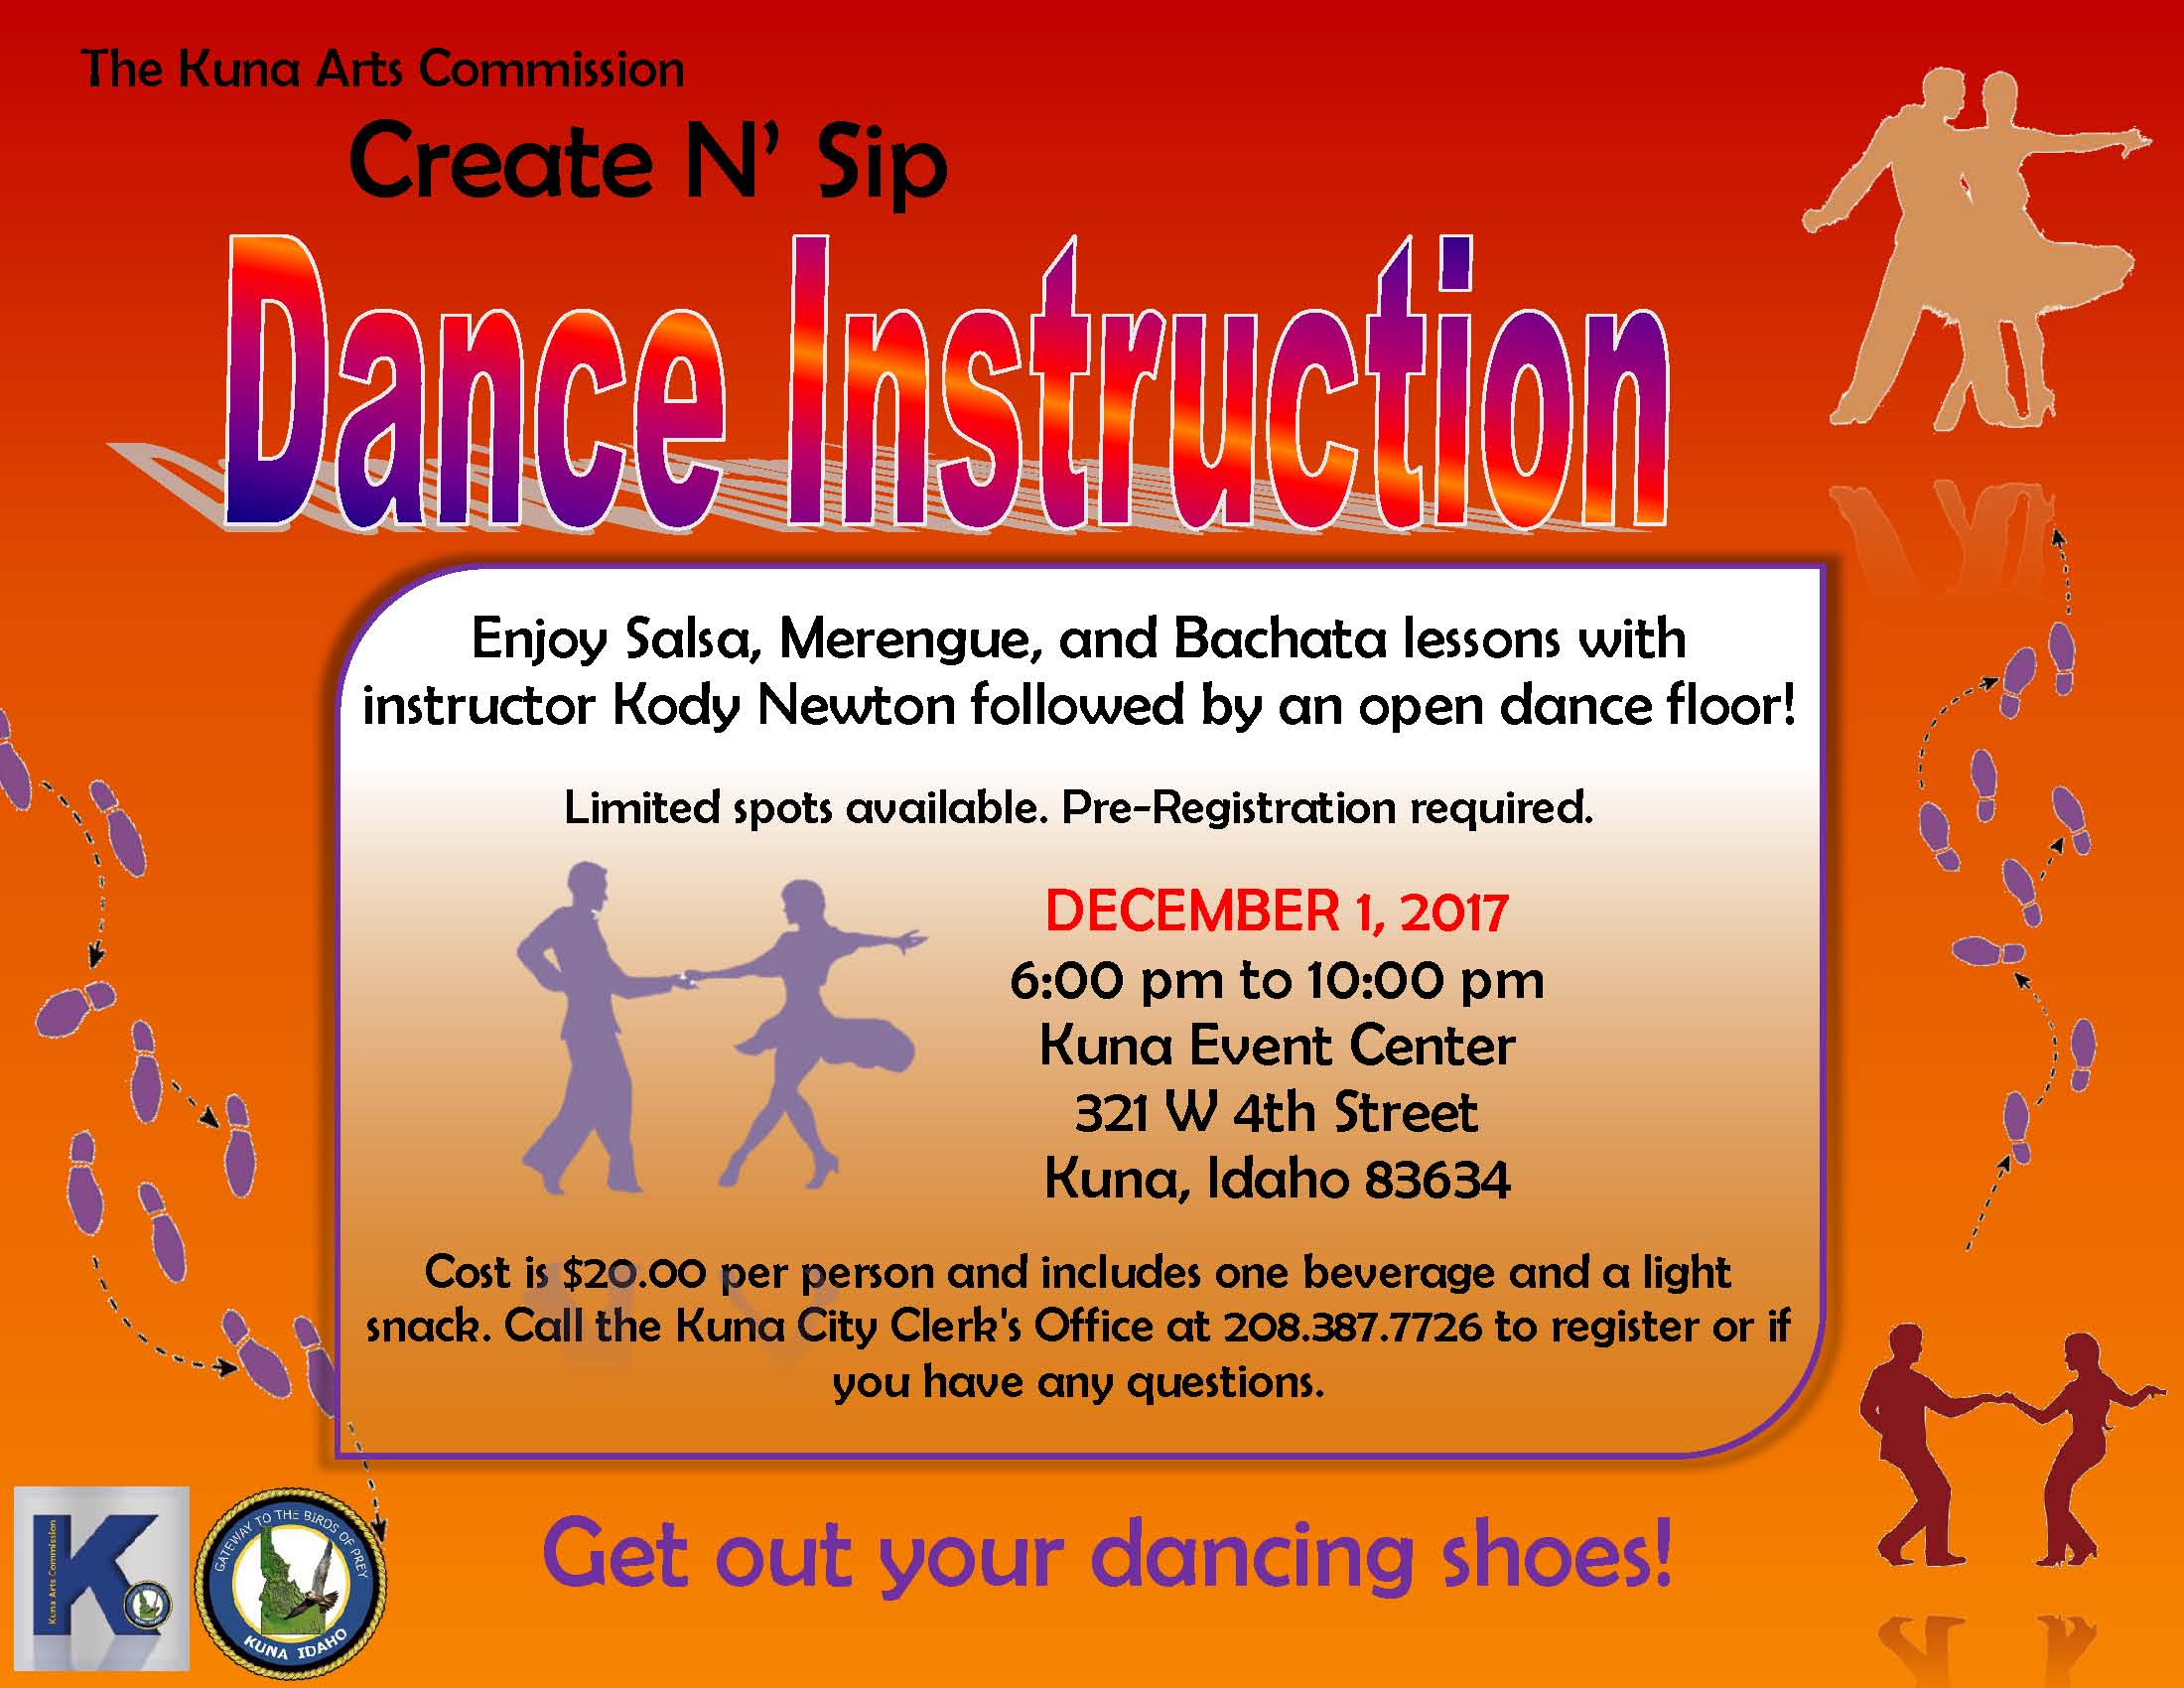 Dance Instruction Flyer.jpg